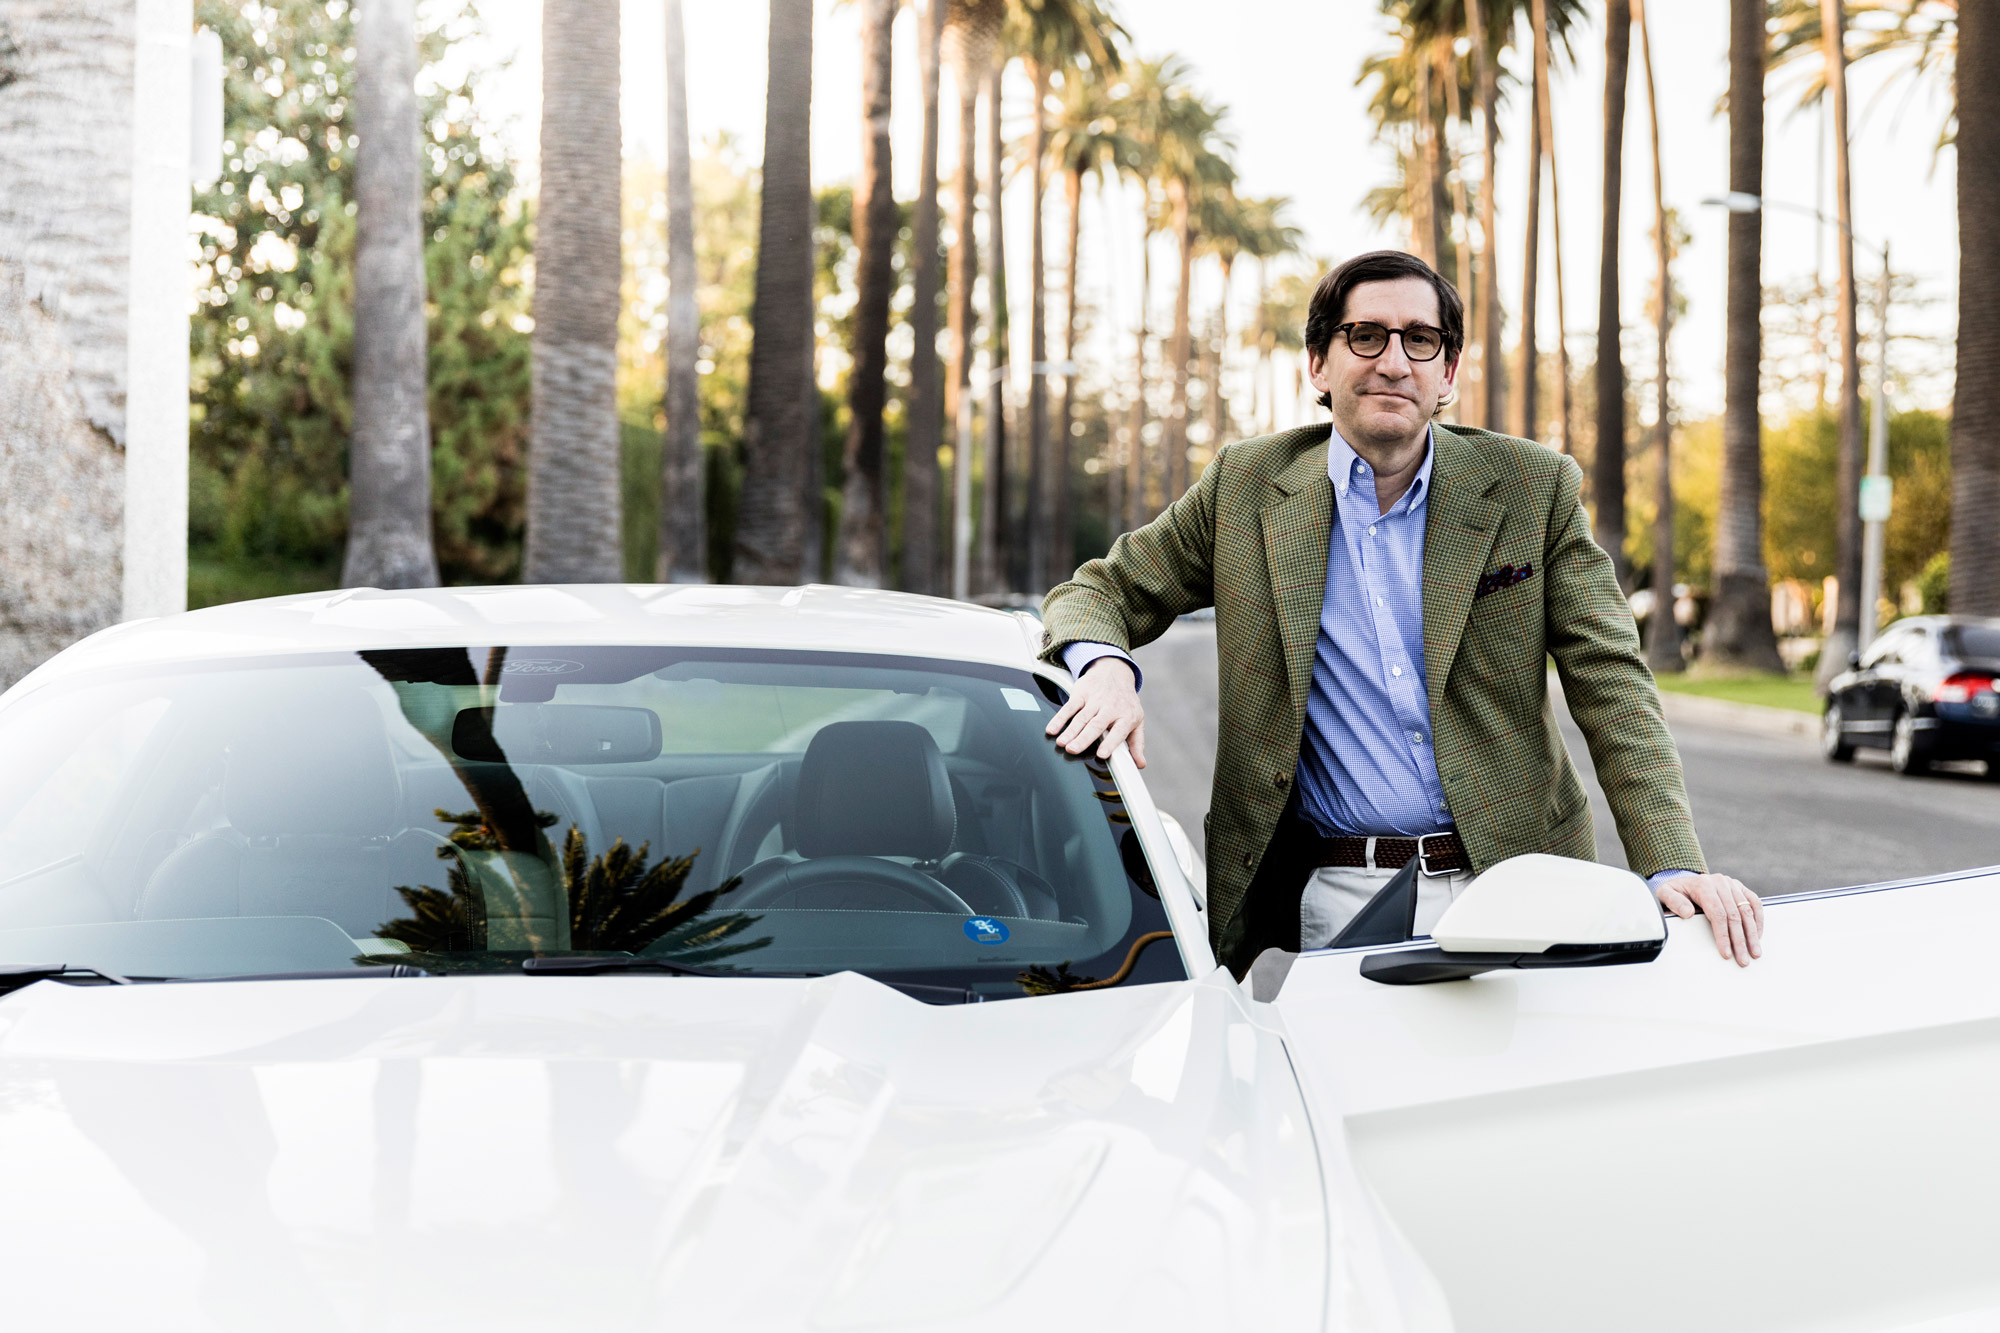 Alessandro Uzielli poses with a white mustang